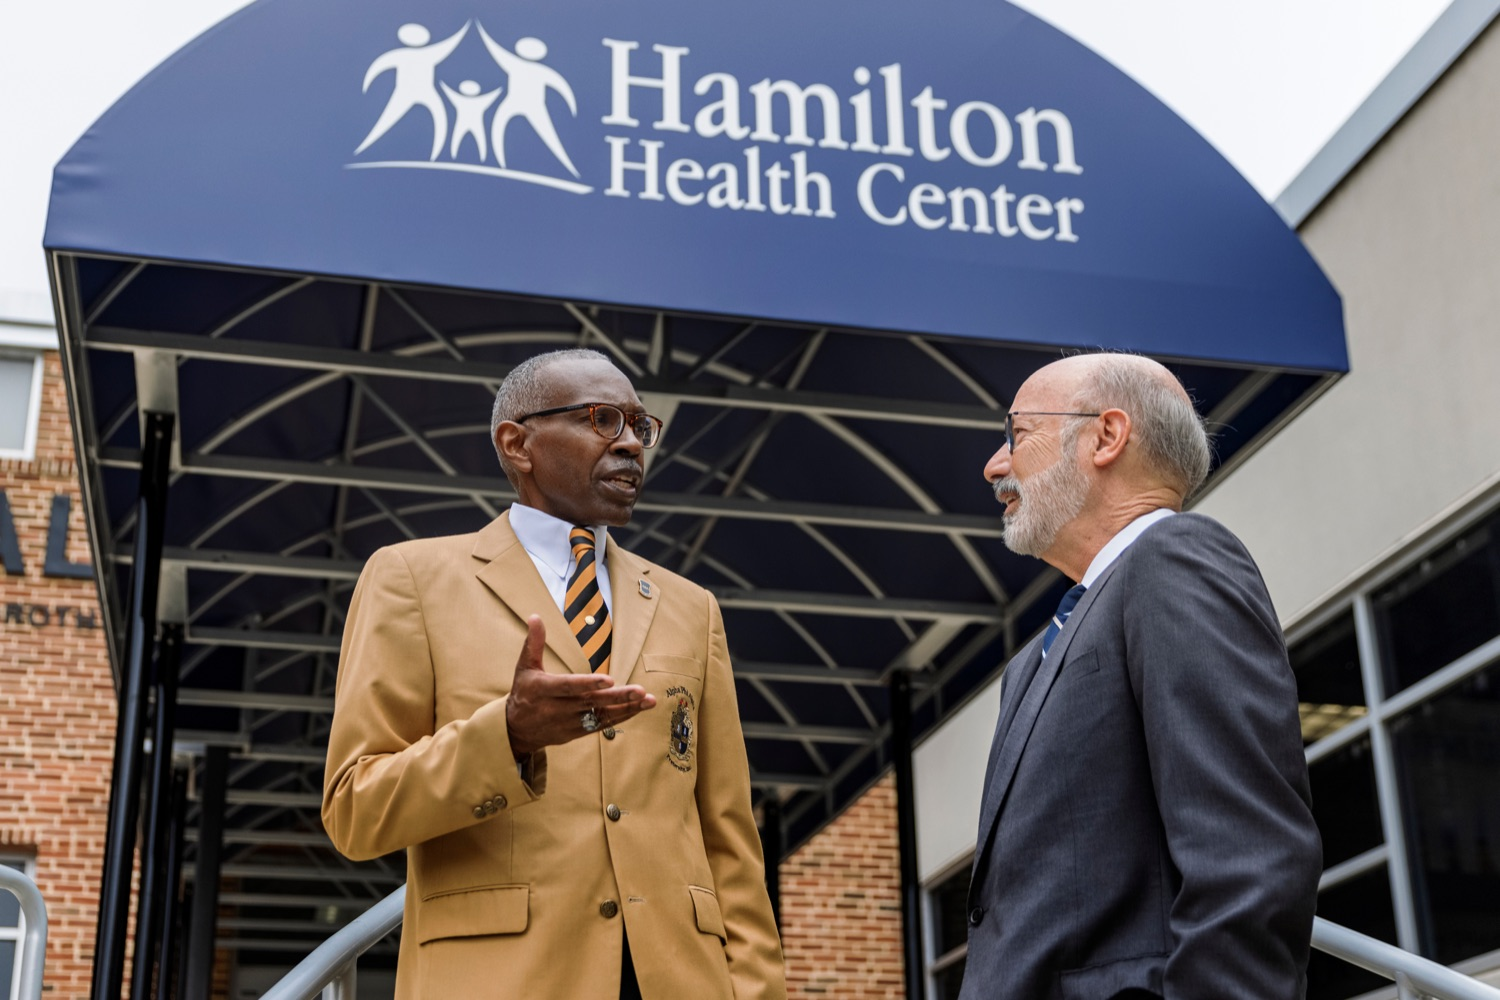 """<a href=""""https://filesource.wostreaming.net/commonwealthofpa/photo/20119_GOV_Vaccines_NK_015.jpg"""" target=""""_blank"""">⇣Download Photo<br></a>Governor Tom Wolf talks with Zeta Theta Lambda Chapter of Alpha Phi Alpha fraternity member Kenneth L. Mickens during a press conference, which encouraged eligible Pennsylvanians who are not yet vaccinated to take advantage of their upcoming community COVID-19 vaccine clinic in partnership with the Zeta Theta Lambda Chapter of Alpha Phi Alpha fraternity, outside Hamilton Health Center in Harrisburg on Wednesday, October 6, 2021. The clinic will run on Saturday, October 9, COVID-19 vaccinations will be offered from 10am  2pm at Hamilton Health Center, 100 S. 17th St., Harrisburg, PA 17104."""